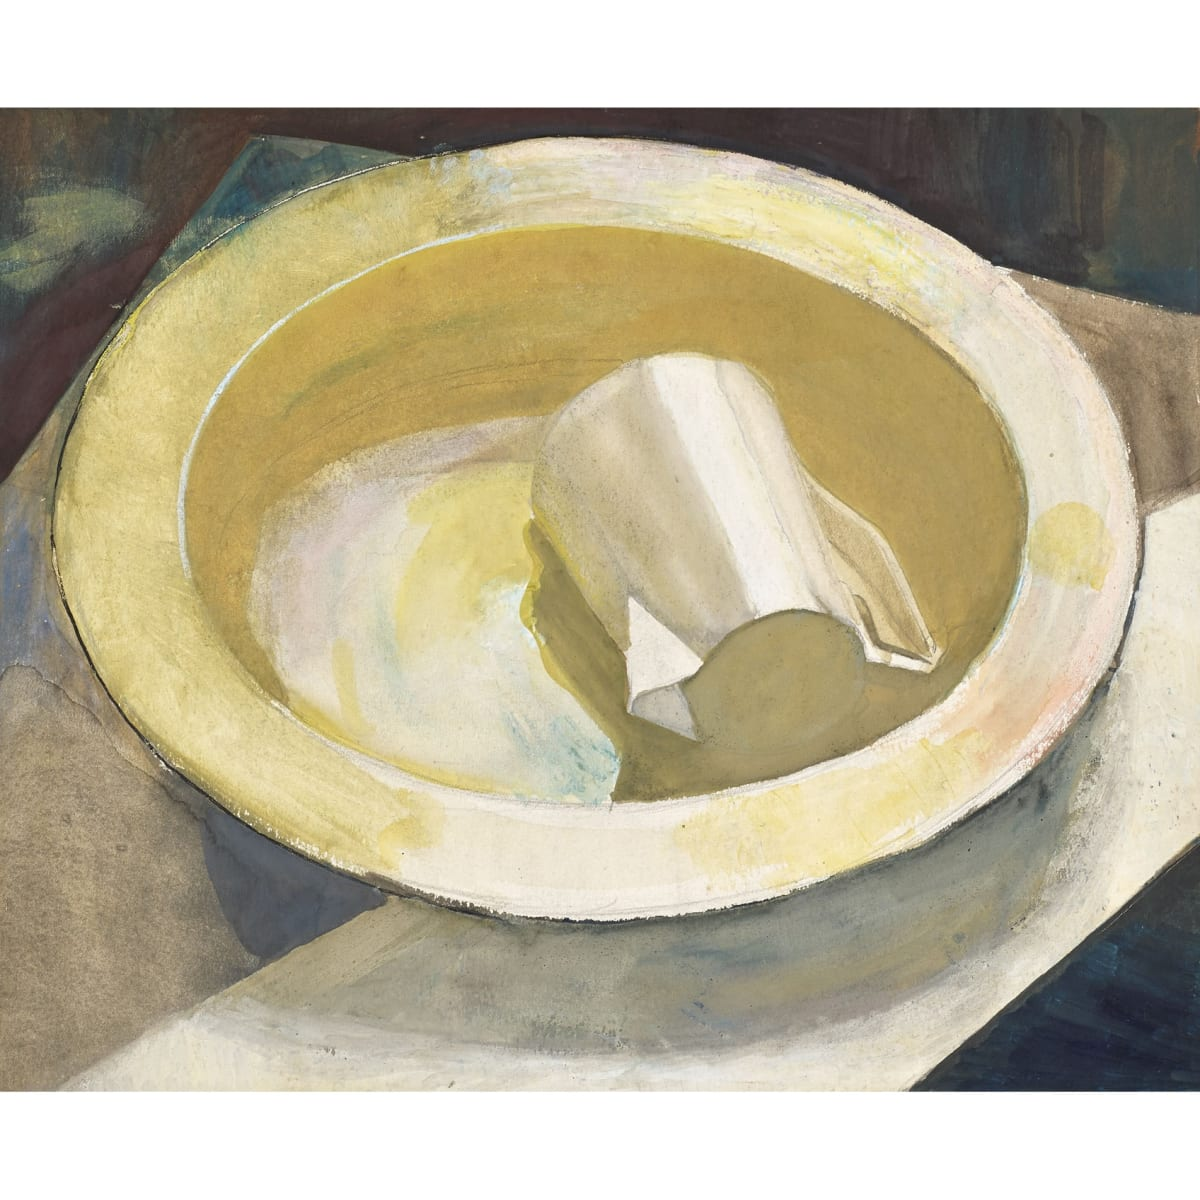 James Cowie Jug in Yellow Bowl watercolour and gouache 8 1/4 x 10 inches